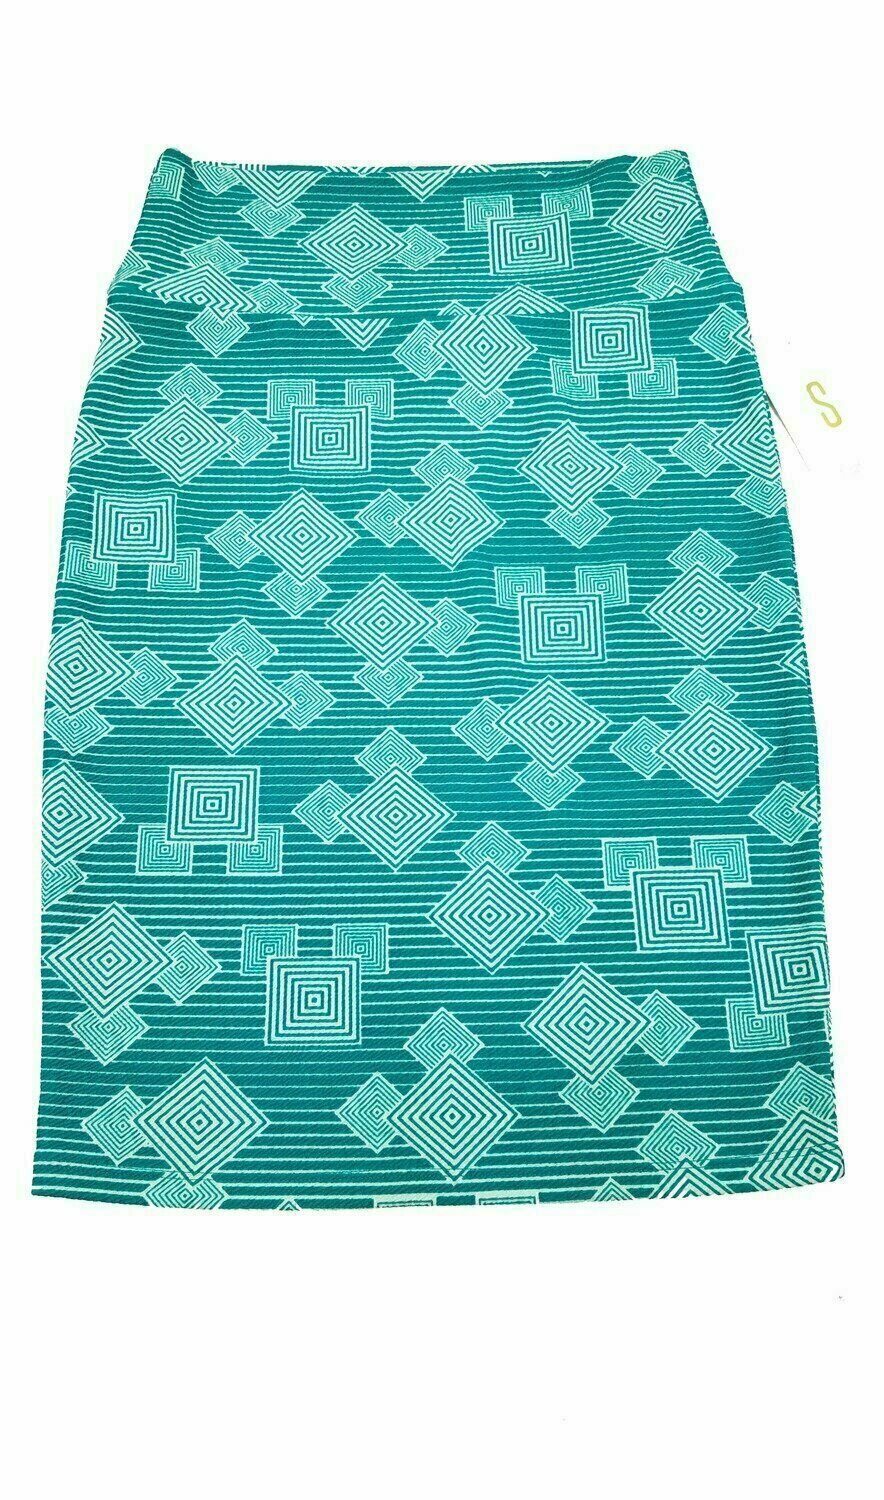 LuLaRoe Cassie Small S Womens Knee Length Pencil Skirt fits sizes 6-8  S53